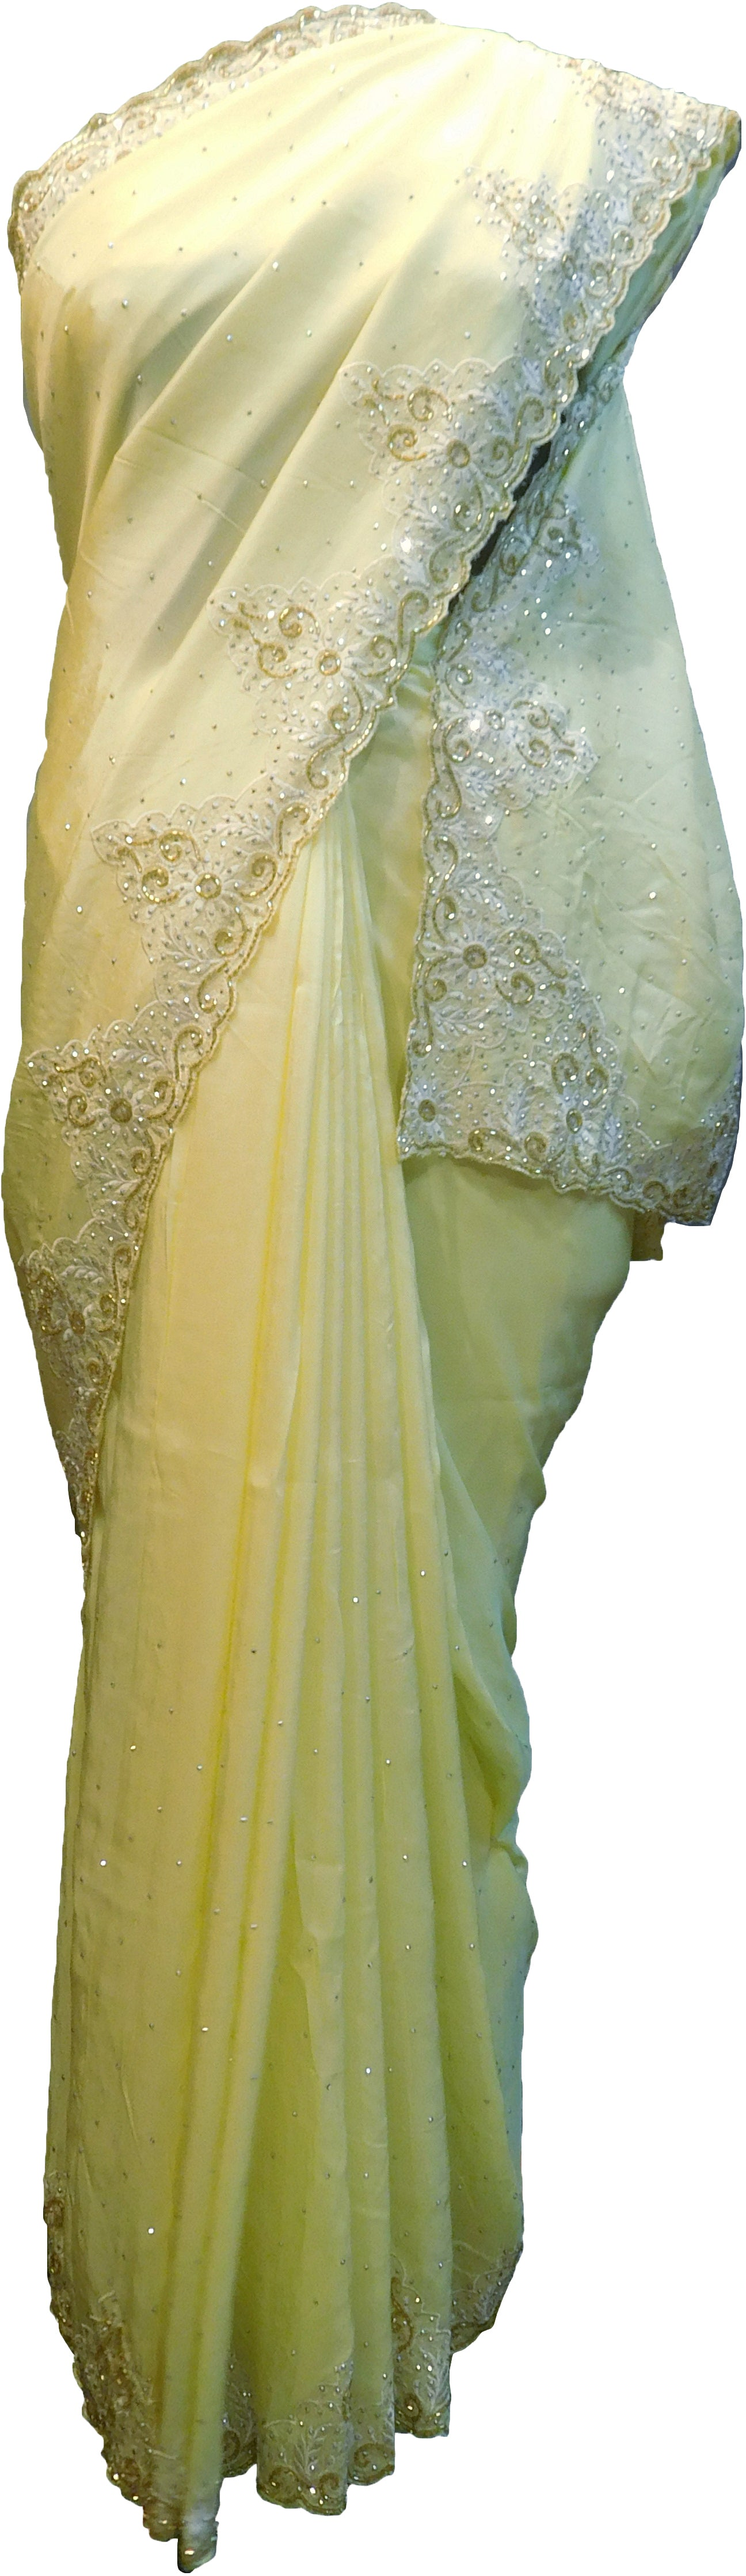 SMSAREE Yellow Designer Wedding Partywear Crepe (Chinon) Stone Thread & Cutdana Hand Embroidery Work Bridal Saree Sari With Blouse Piece F306